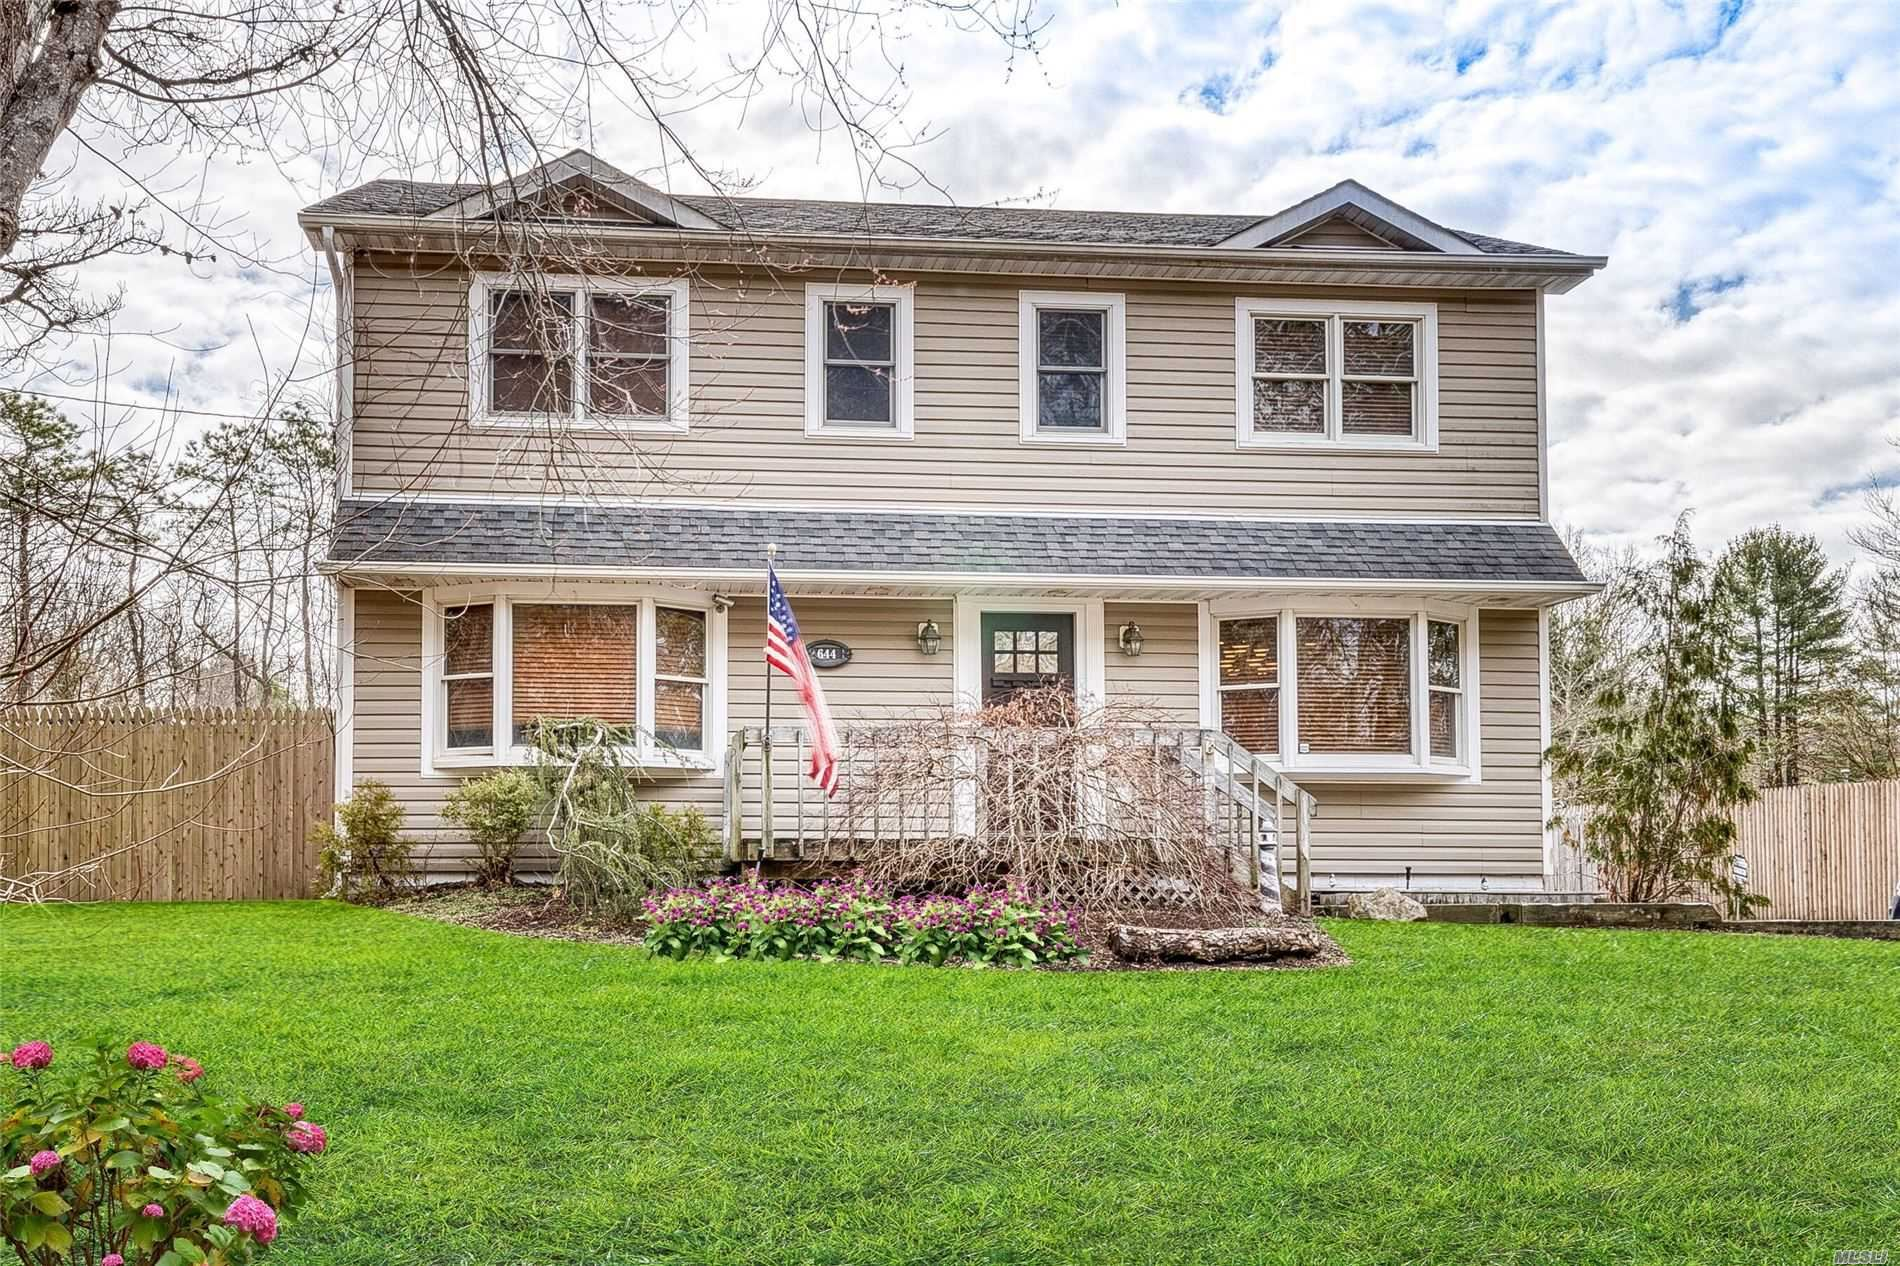 644 Wading River Hol Road, Middle Island, NY 11953 - MLS#: 3211573